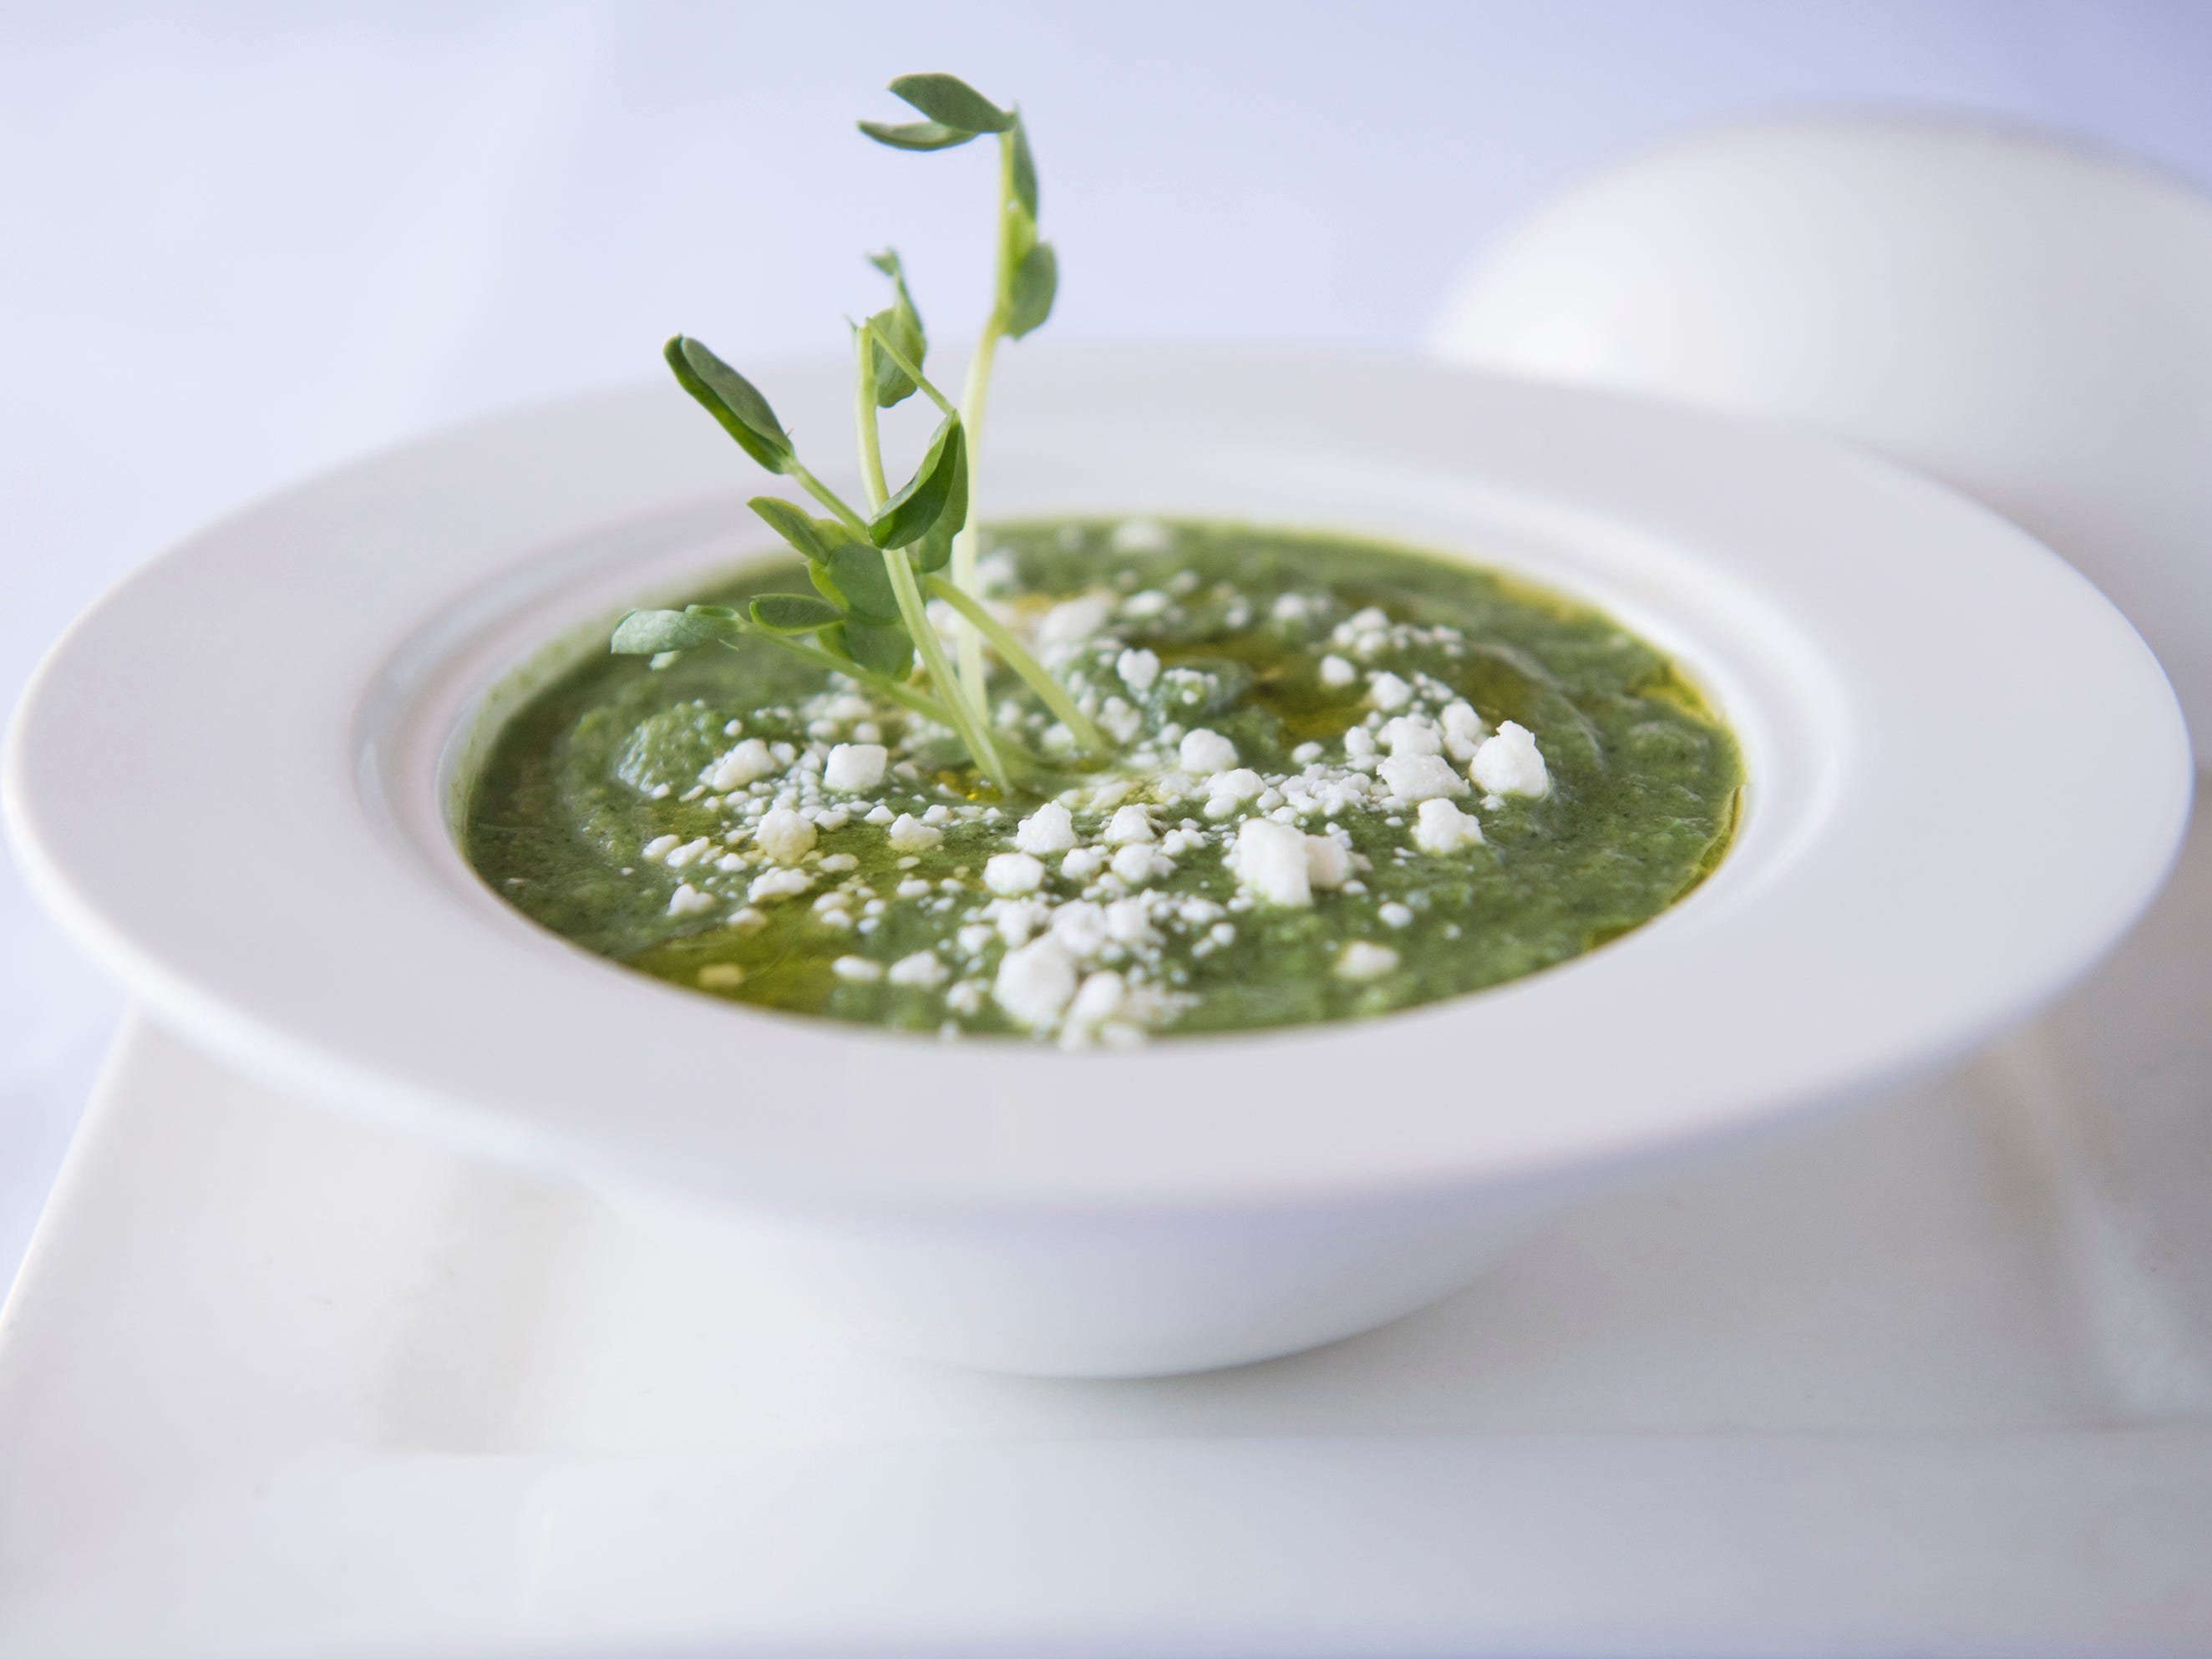 Spring onion soup with goat cheese creme fraiche is a first course option on the SJ Hot Chefs' Spring Restaurant Week menu of Braddock's in Medford.